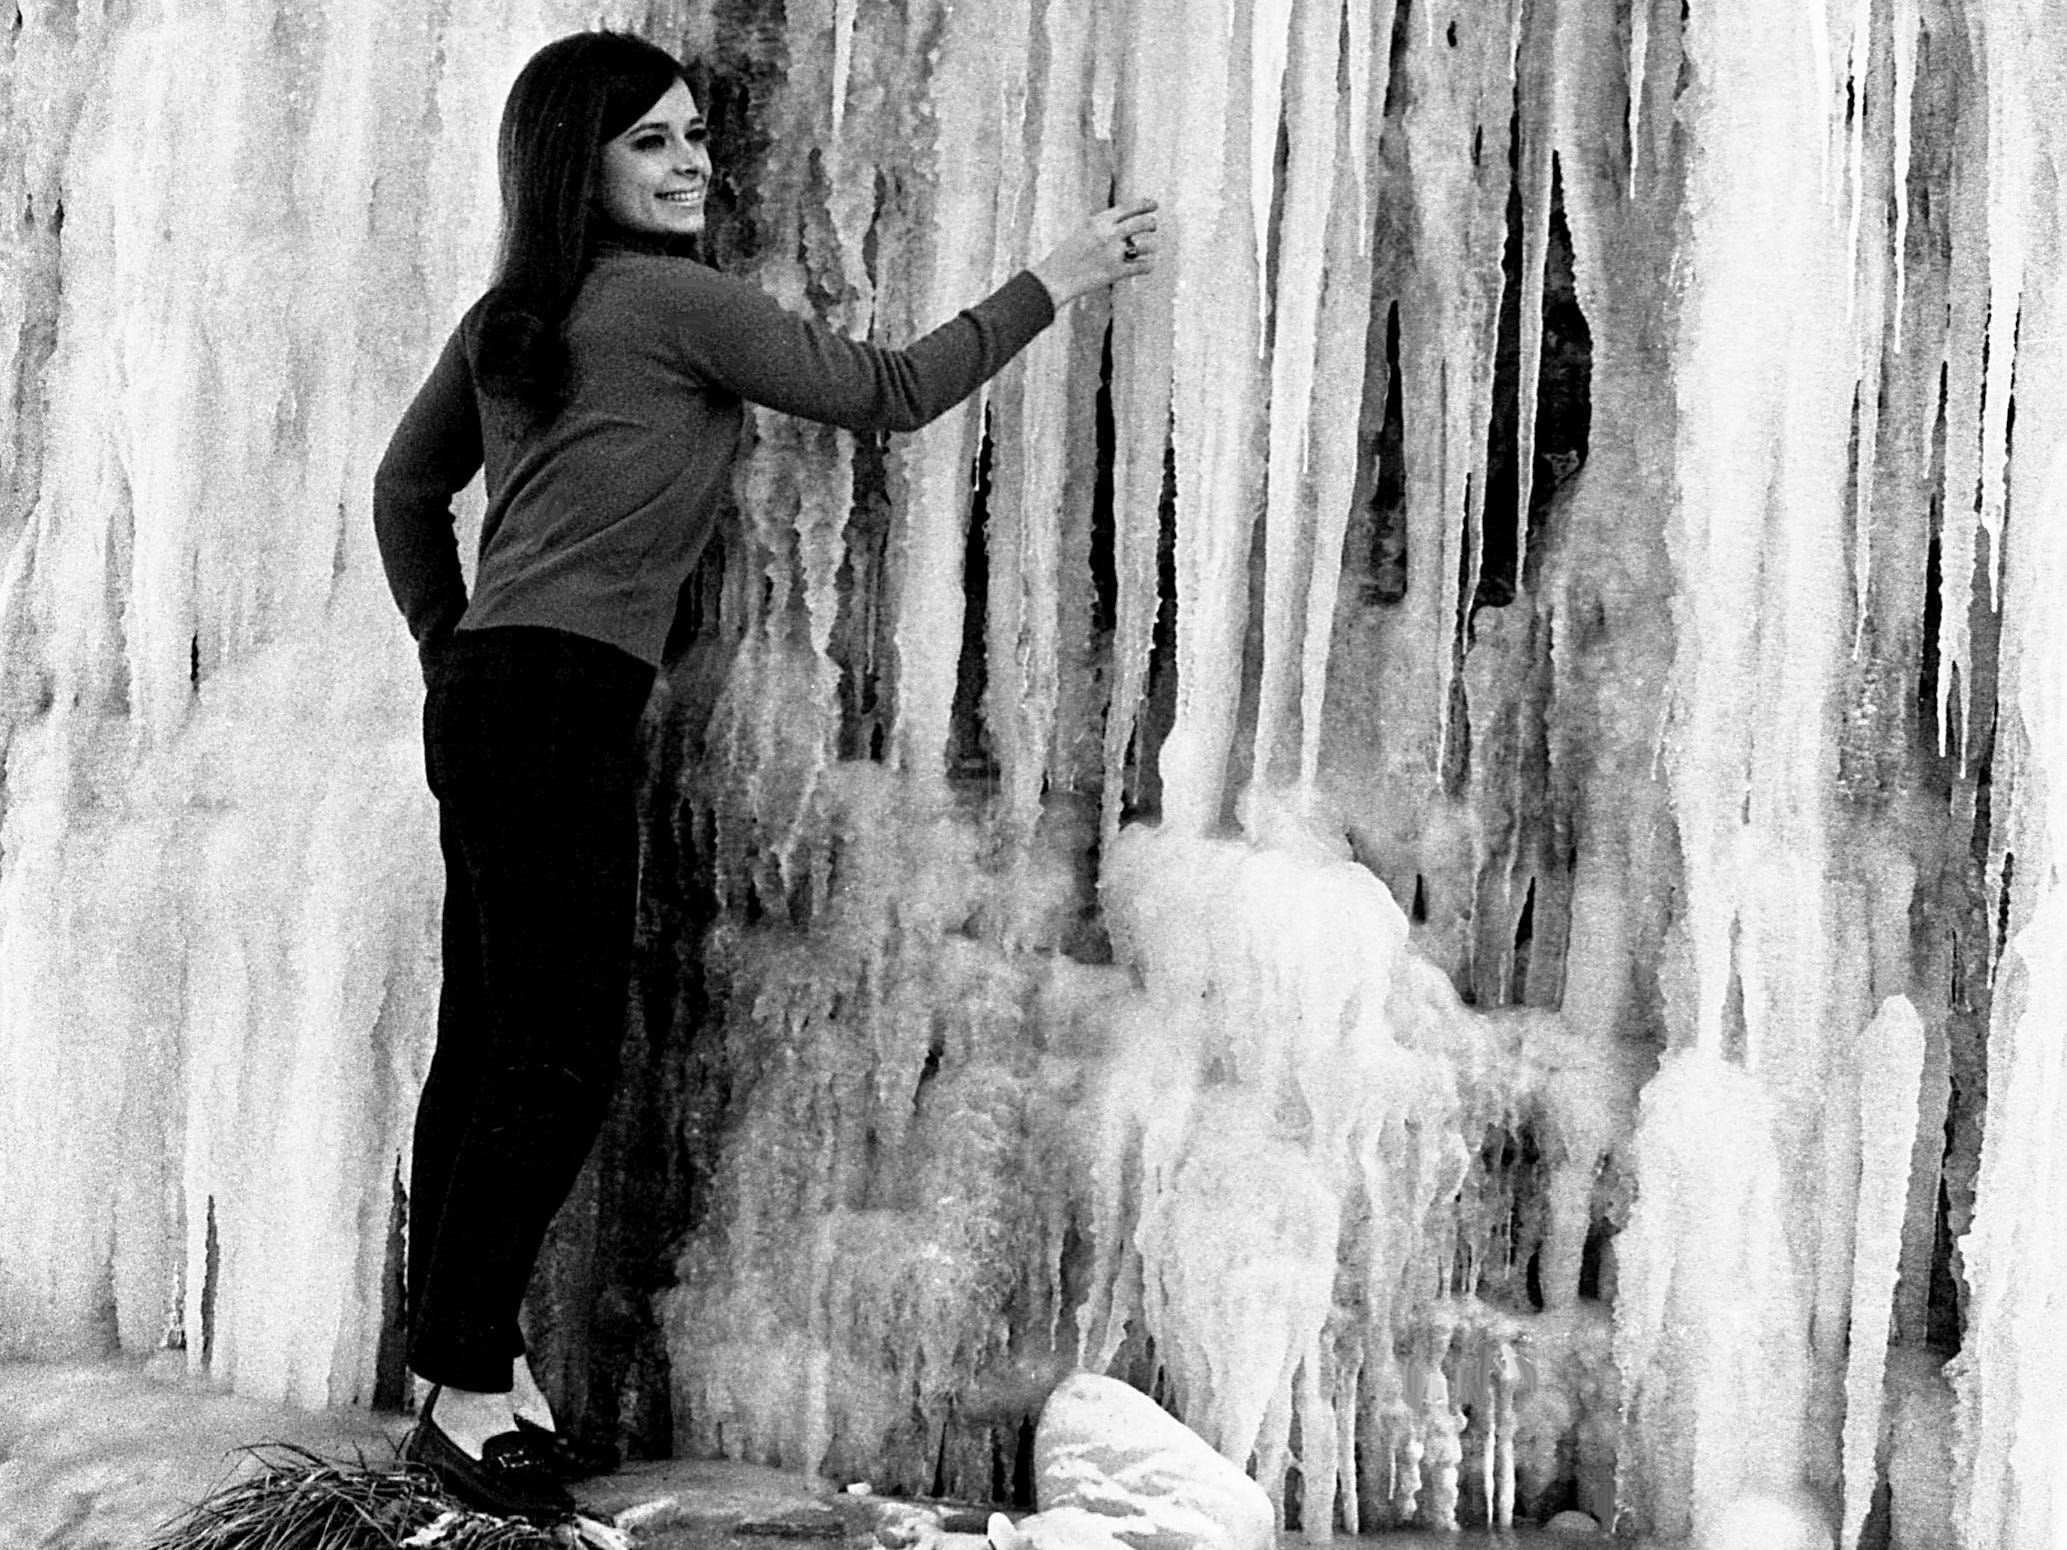 Connie Eaton, a David Lipscomb High School student, reaches for one of the giant icicles that formed on a bluff beside Briley Parkway near Elm Hill Pike as temperatures dropped to a low of 8 degrees Jan. 4, 1969.